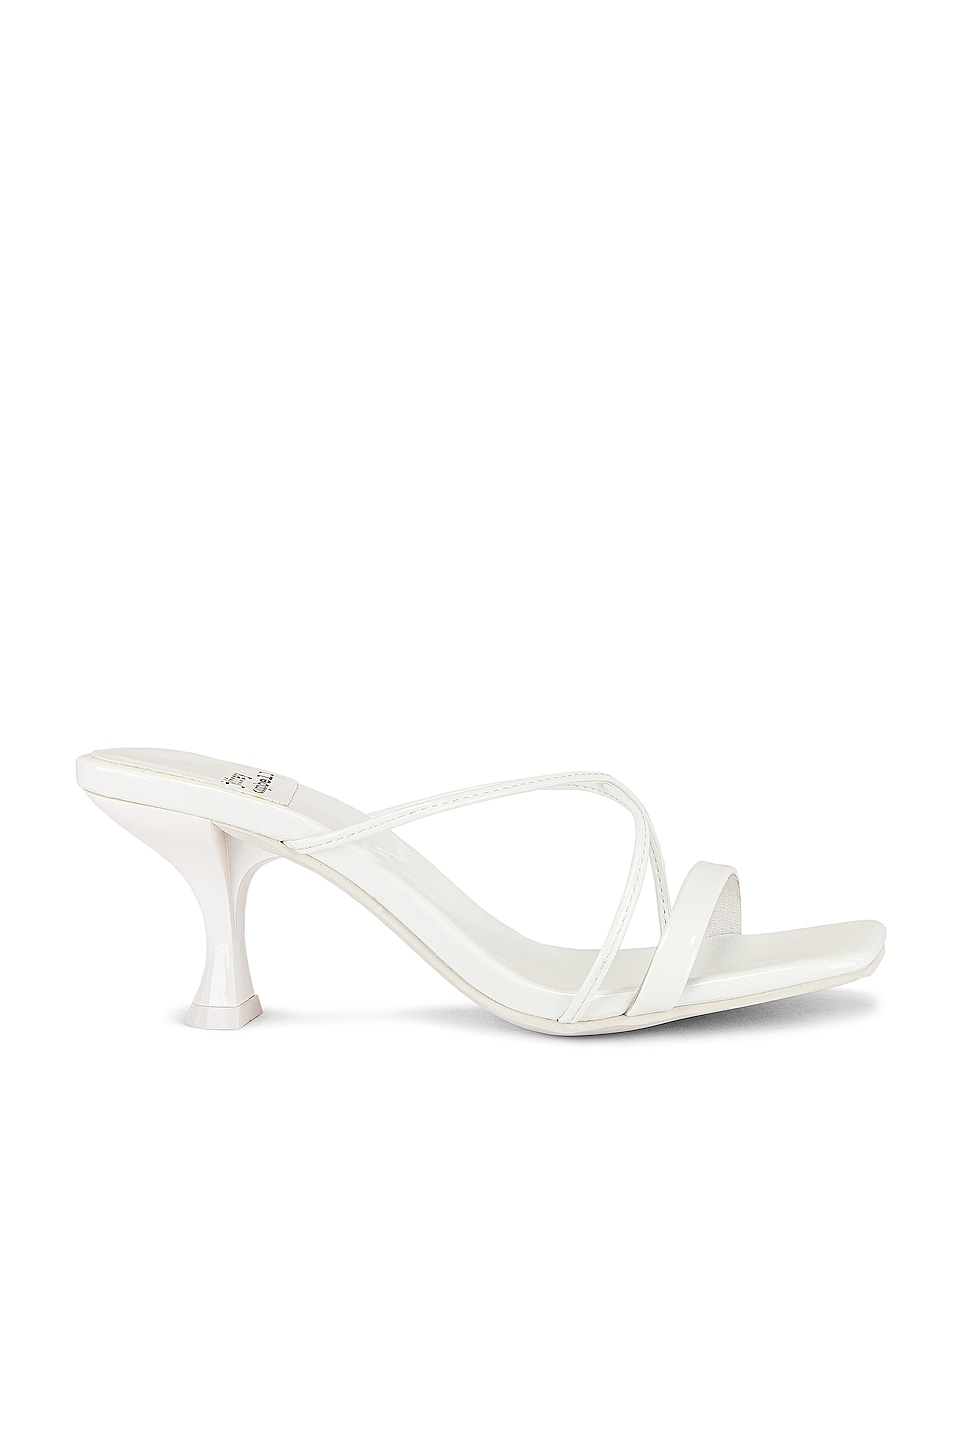 Jeffrey Campbell Mural Mule im White Patent